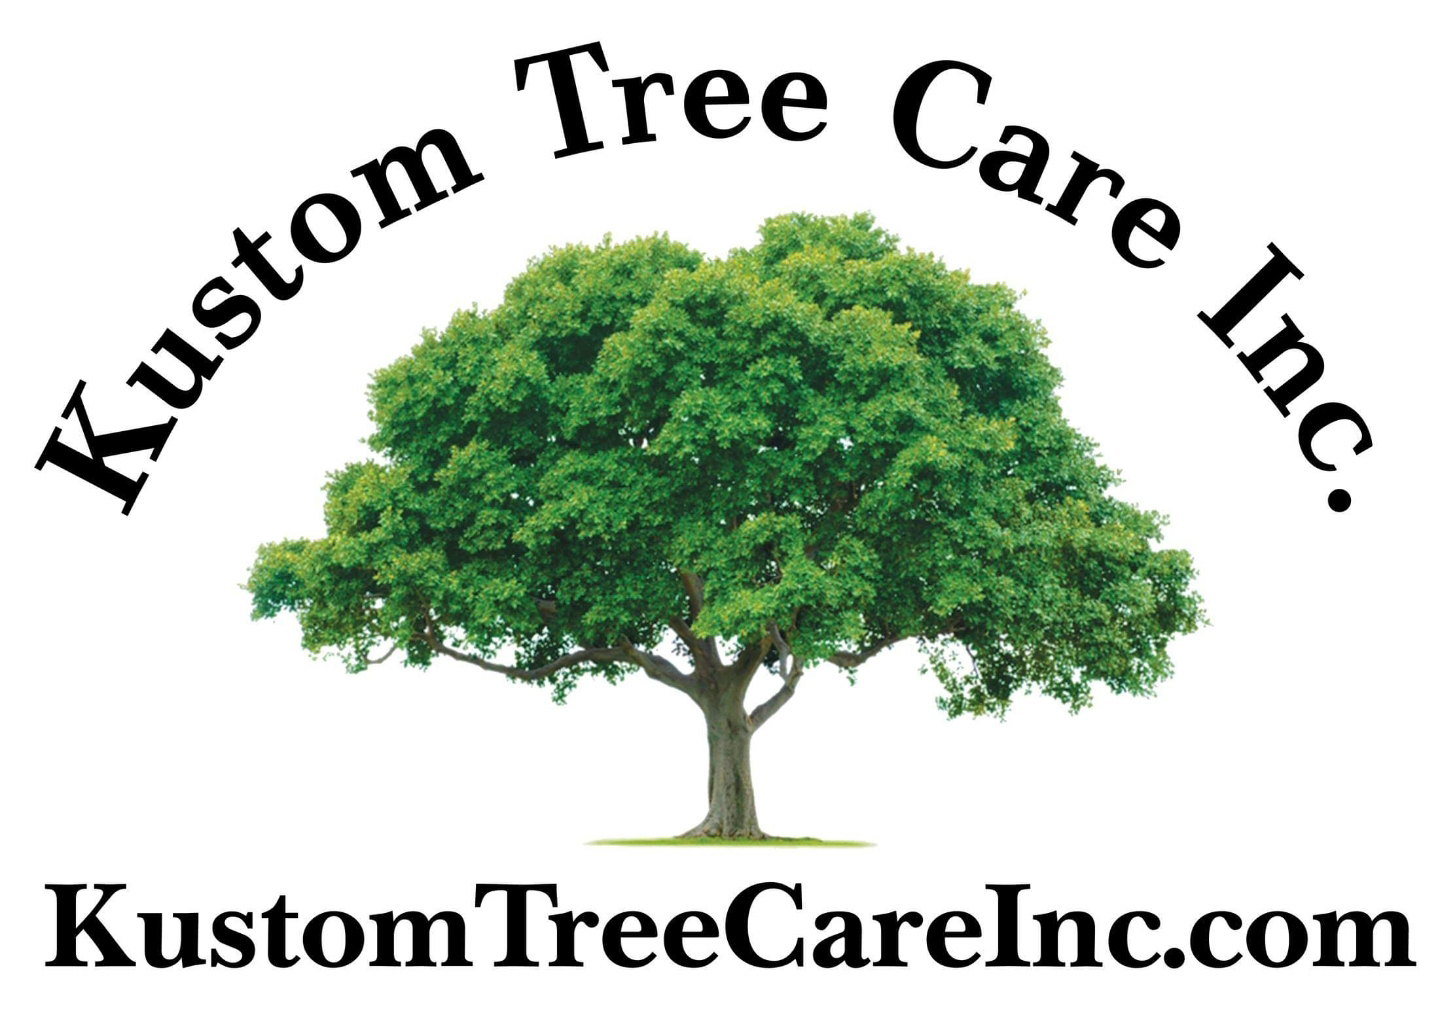 Kustom Tree Care Inc.